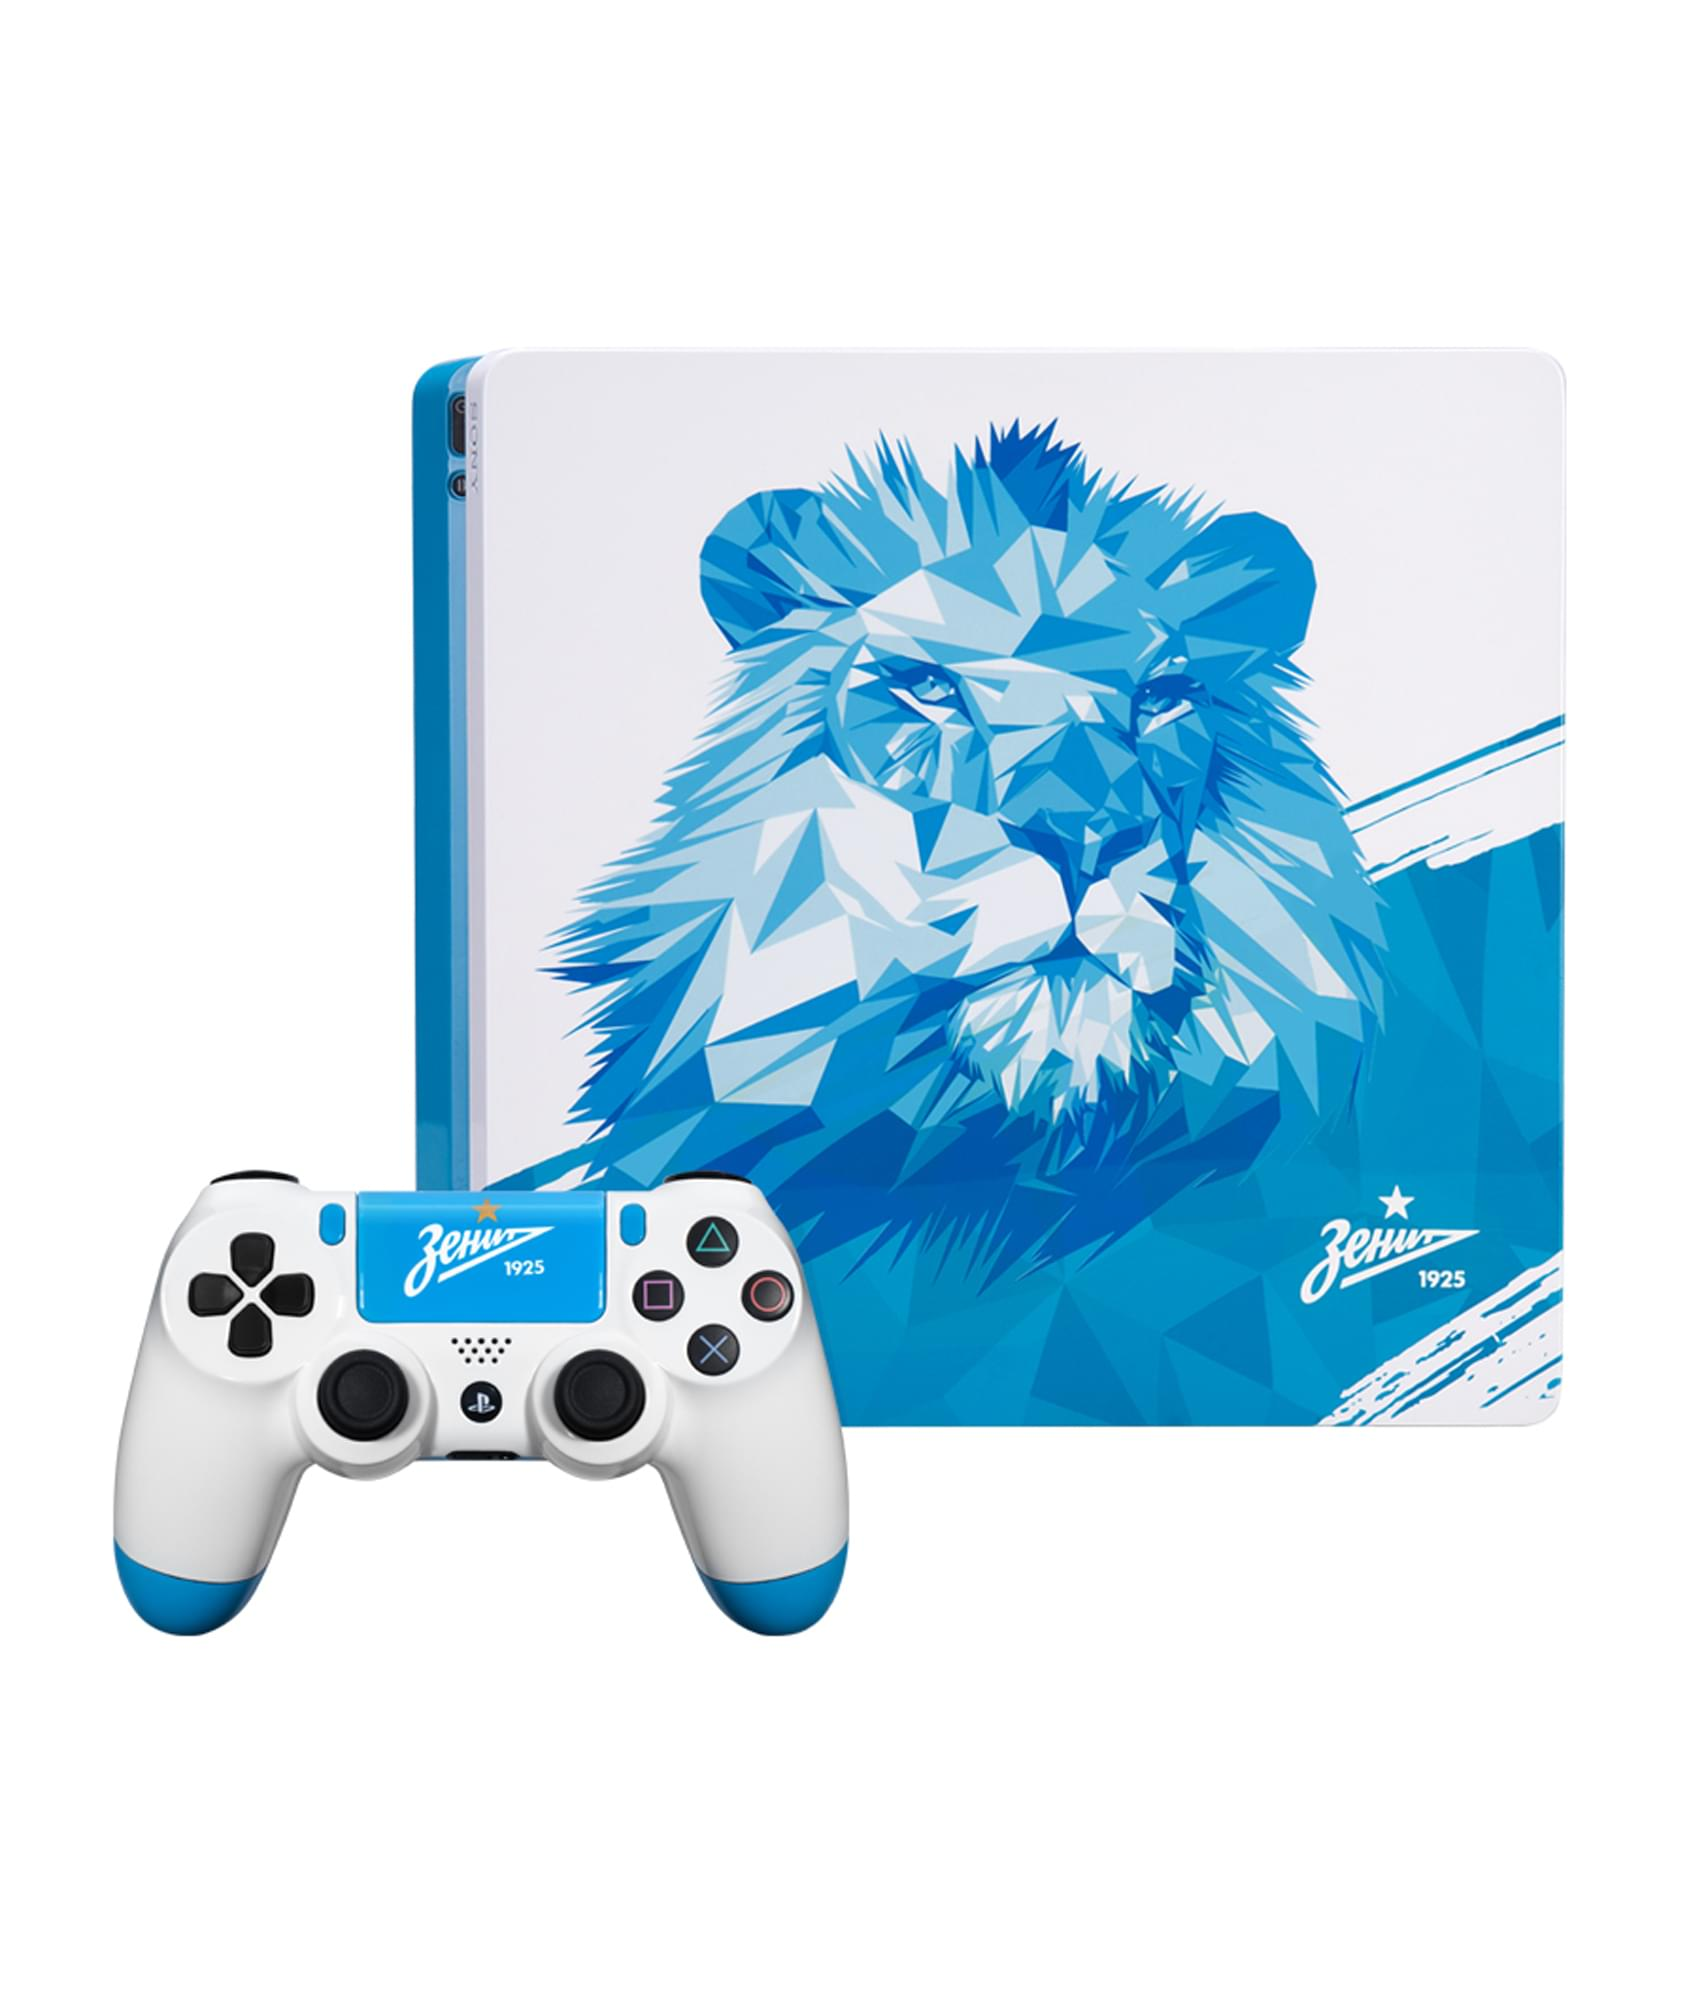 Консоль Sony Playstation 4 Slim 500 GB «Zenit Lion» Зенит приставка sony playstation 4 slim 1tb fifa18